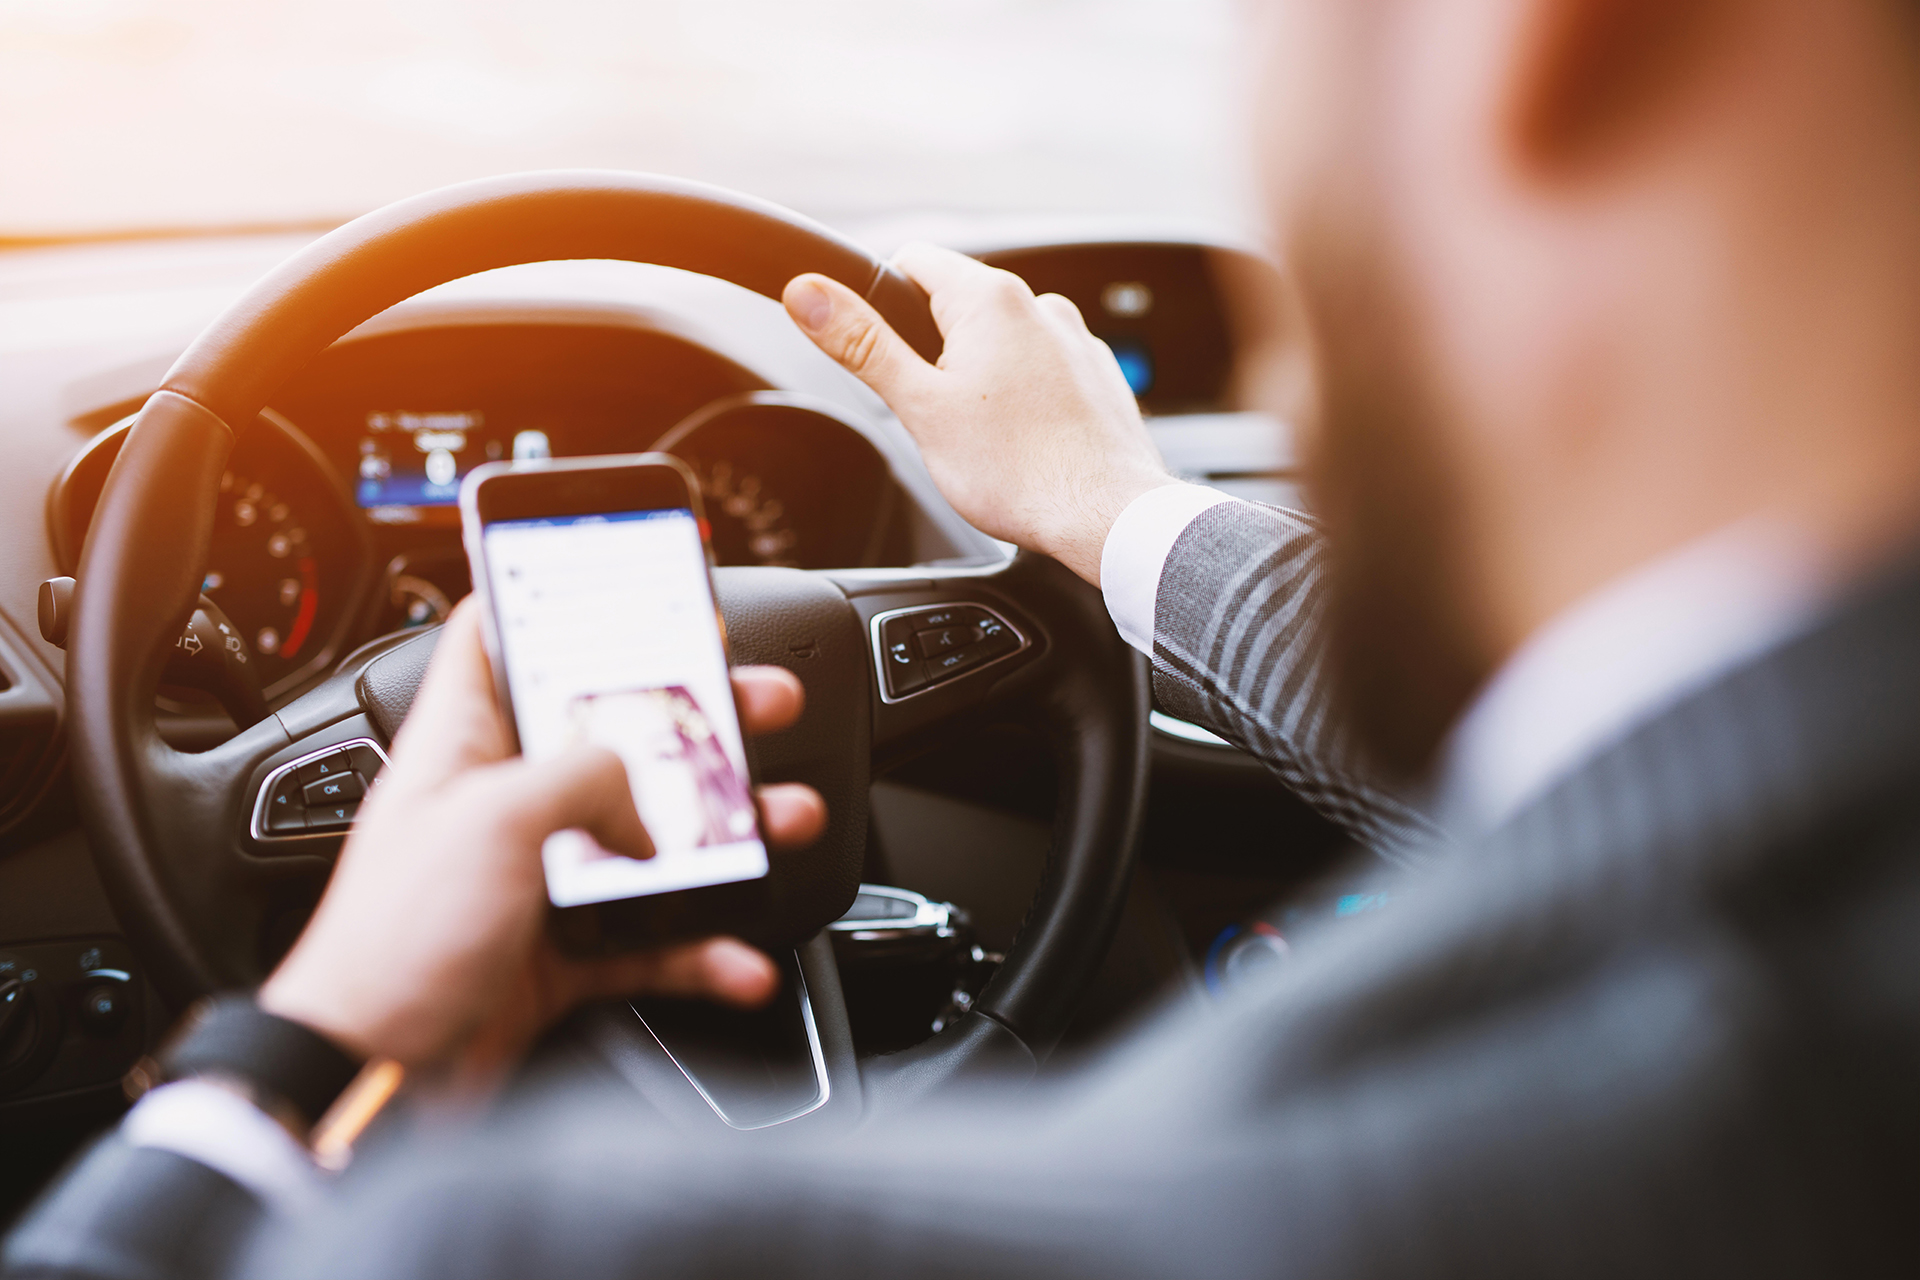 Driver Looking at Phone While Driving